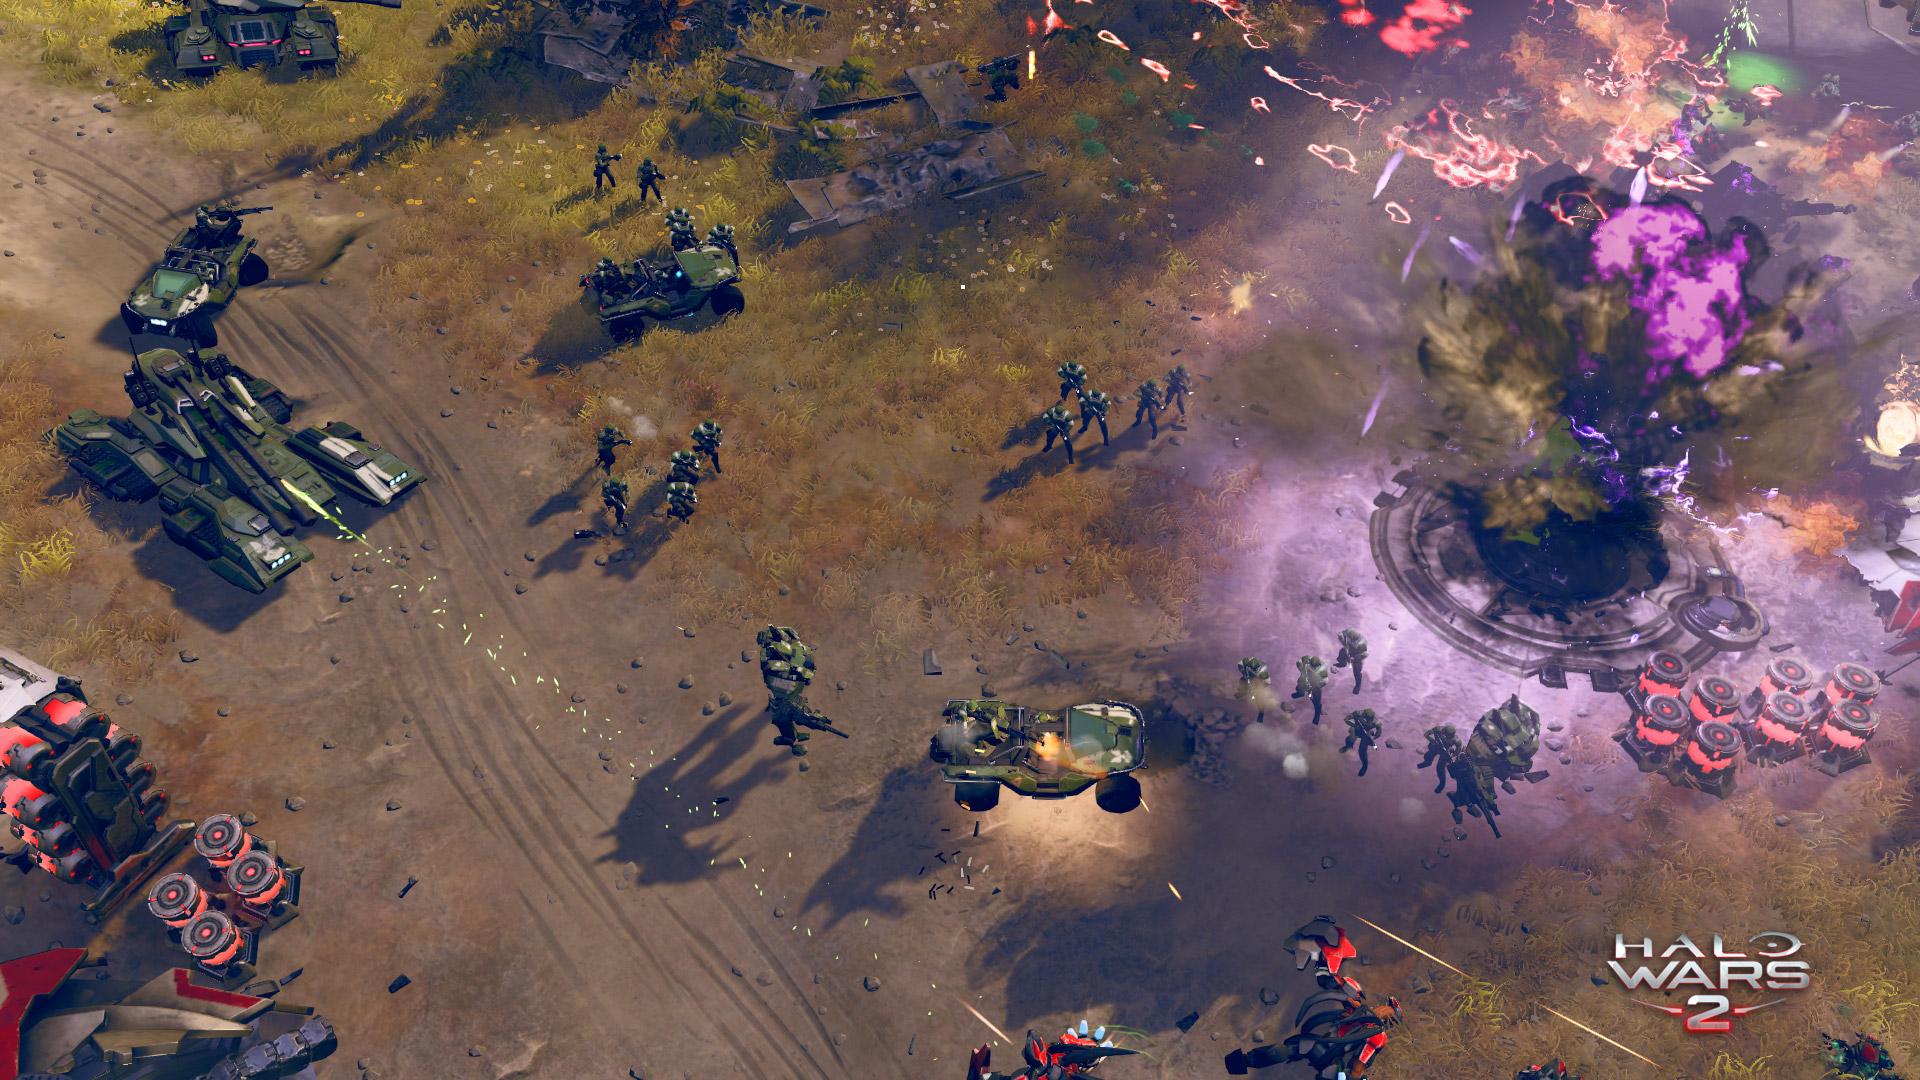 1920x1080 > Halo Wars 2 Wallpapers